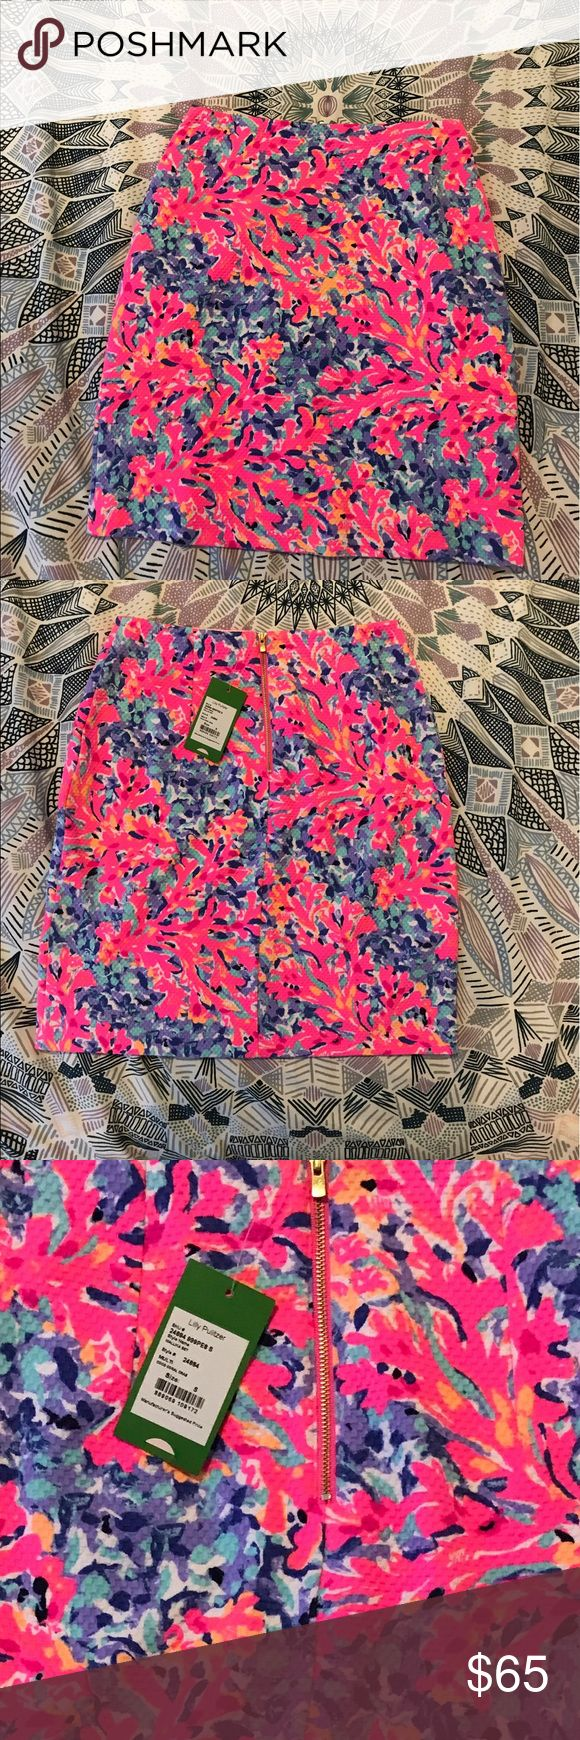 Lilly Pulitzer Coco Crab Skirt NEW WITH TAGS Perfect for work or fun! Great bright color for summer! Stretch Material fits great! True to size Lilly Pulitzer Skirts Pencil